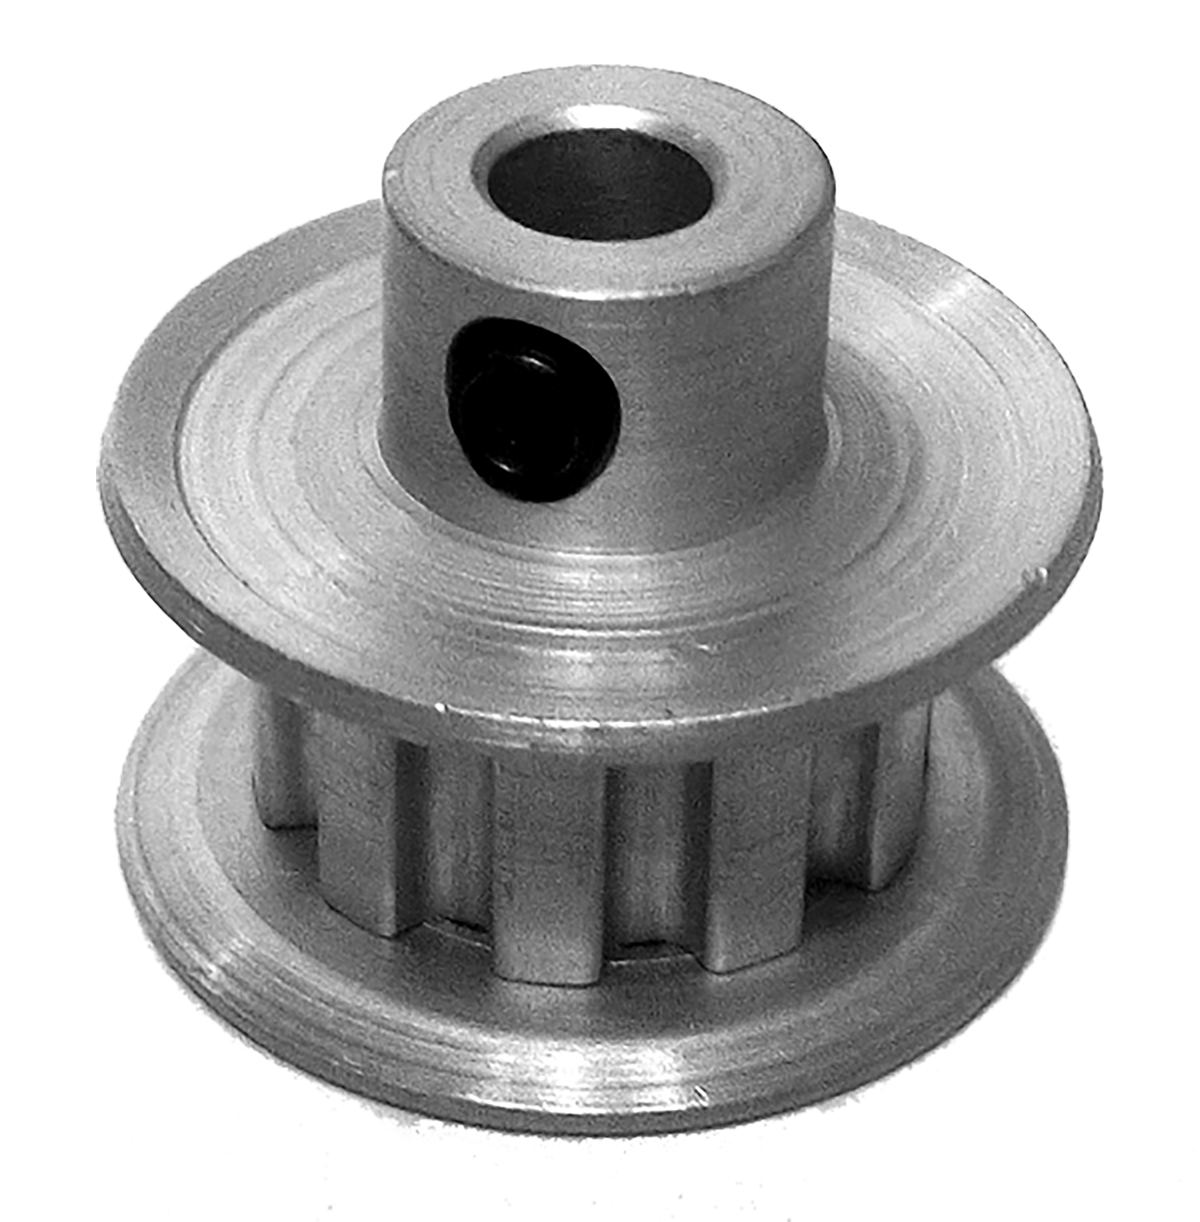 12XL025-6FA2 - Aluminum Imperial Pitch Pulleys